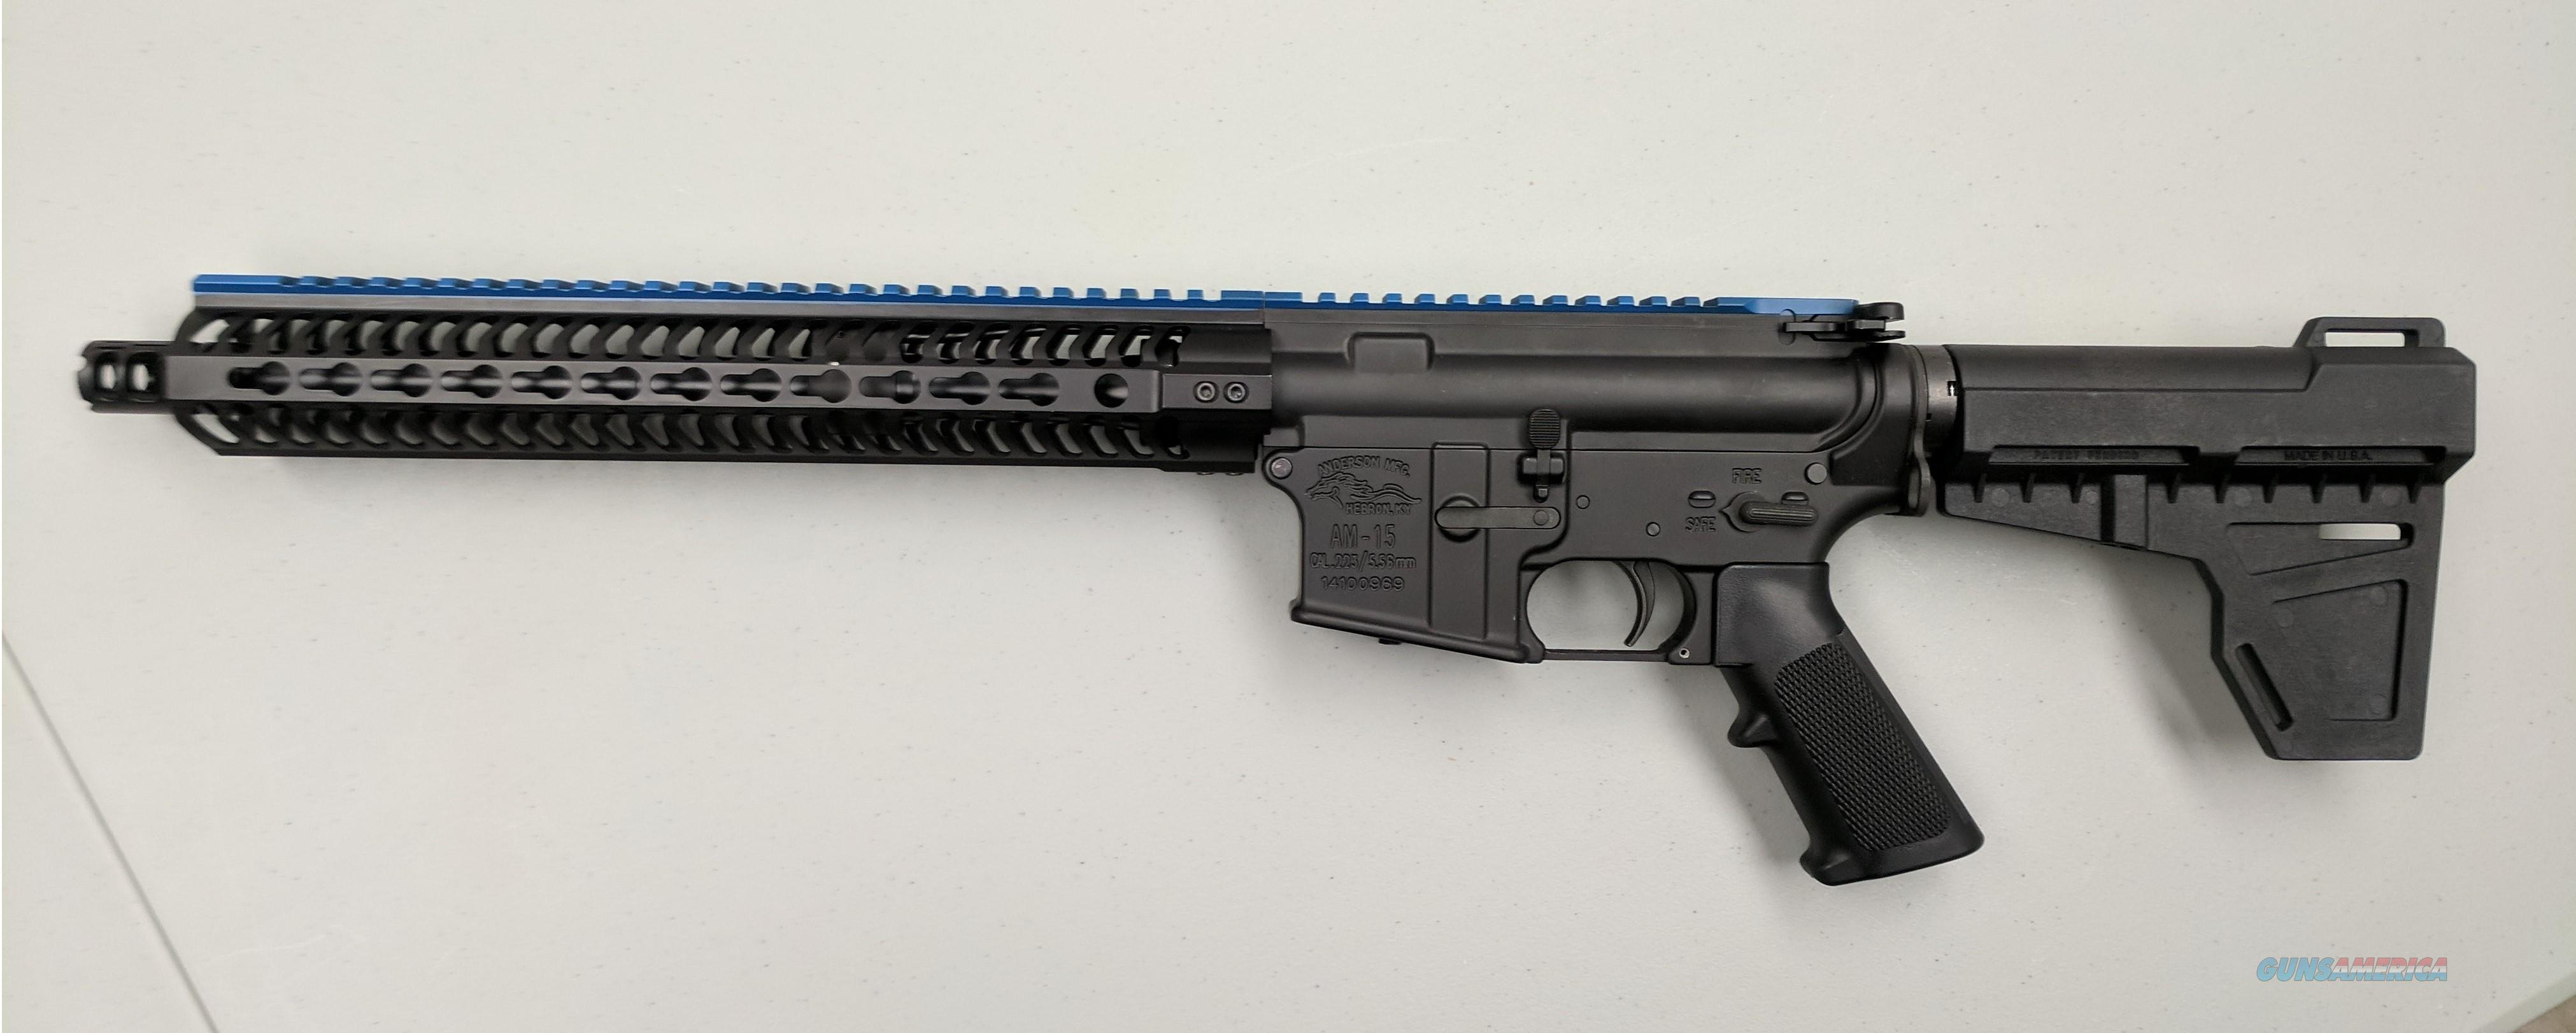 "Anderson ""Thin Blue Line"" 300 Blk AR-Pistol  Guns > Rifles > AR-15 Rifles - Small Manufacturers > Complete Rifle"